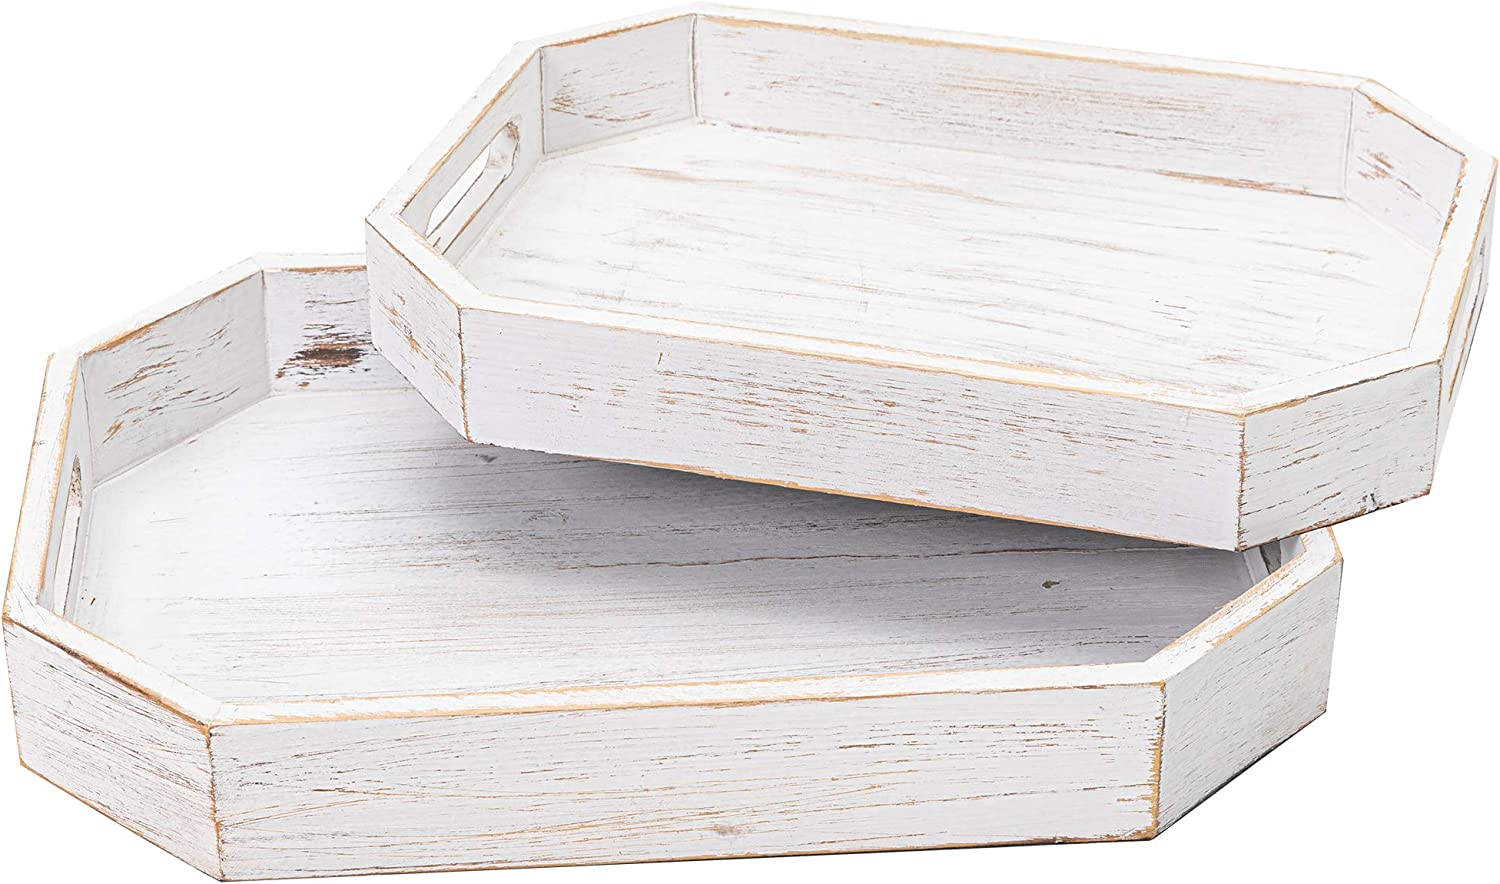 2PCS Whitewash Wood Serving Trays for Coffee Table Ottoman Living Room, Rustic Breakfast Trays for Food Eating with Handles